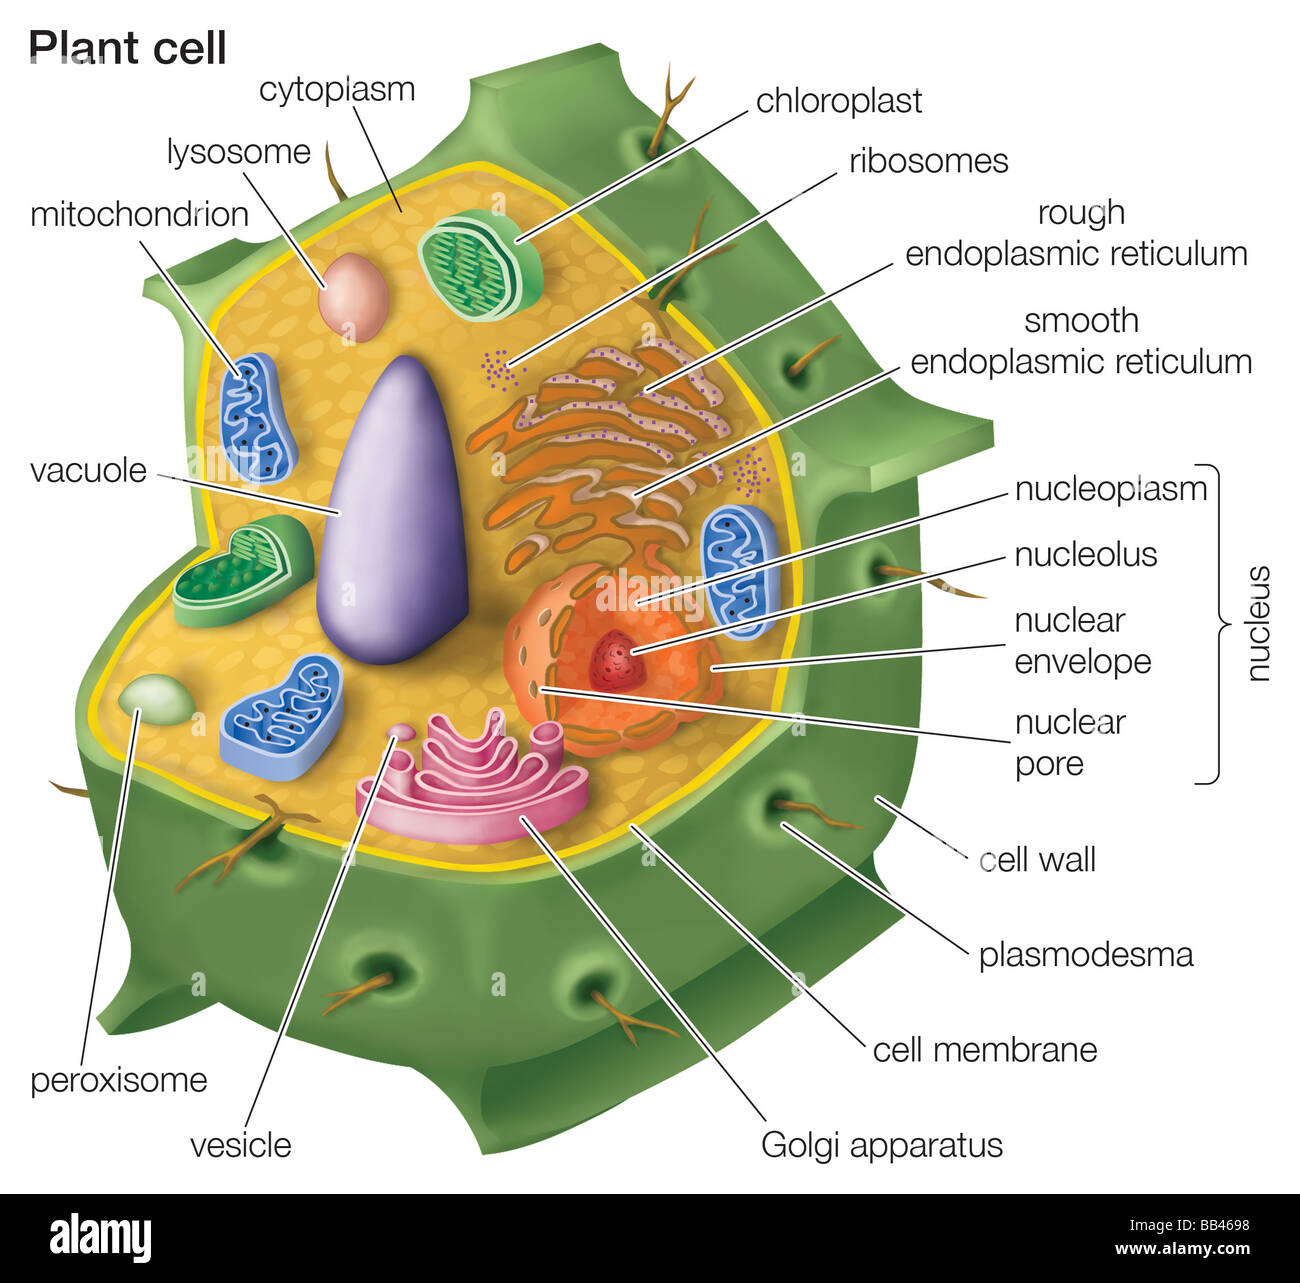 Cutaway drawing of a eukaryotic plant cell stock photo 24064356 alamy cutaway drawing of a eukaryotic plant cell ccuart Gallery